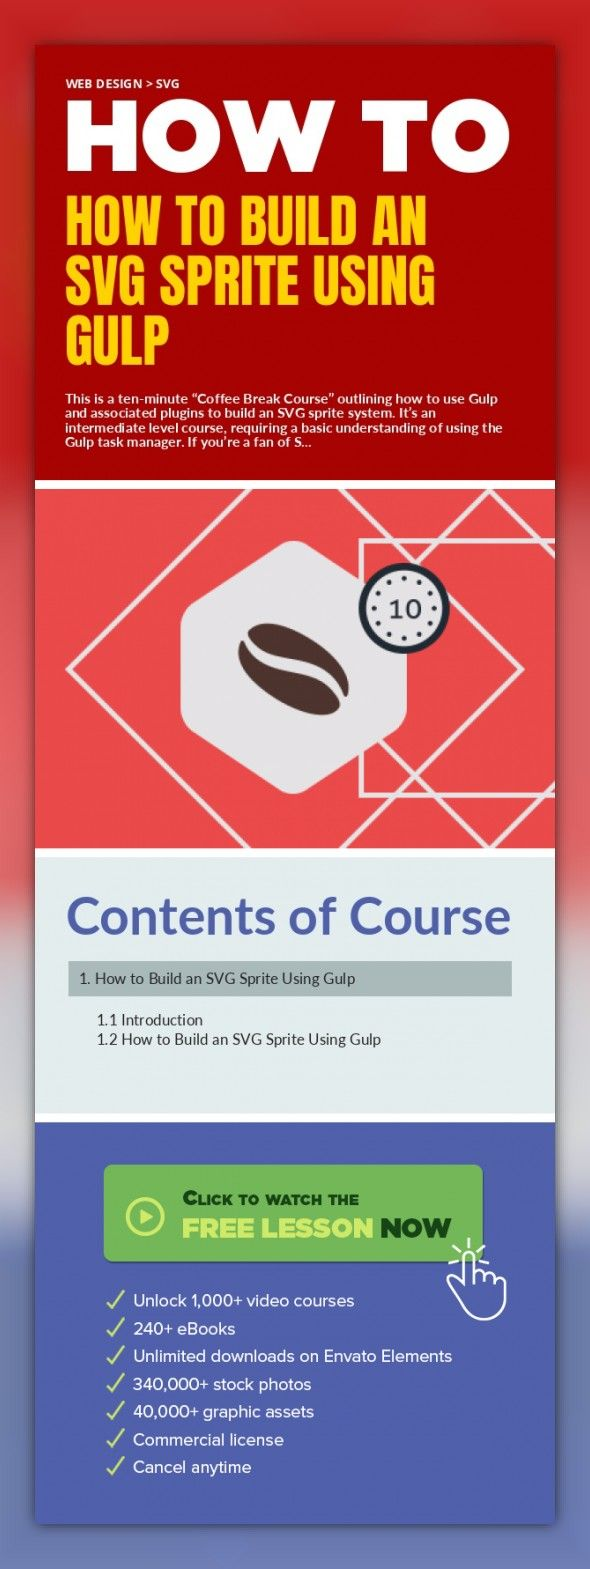 """How to Build an SVG Sprite Using Gulp Web Design, SVG Web Design, SVG  This is a ten-minute """"Coffee Break Course"""" outlining how to use Gulp and associated plugins to build an SVG sprite system. It's an intermediate level course, requiring a basic understanding of using the Gulp task manager.  If you're a fan of SVG and icons, this will be the perfect break to learn how to create an SVG spr..."""